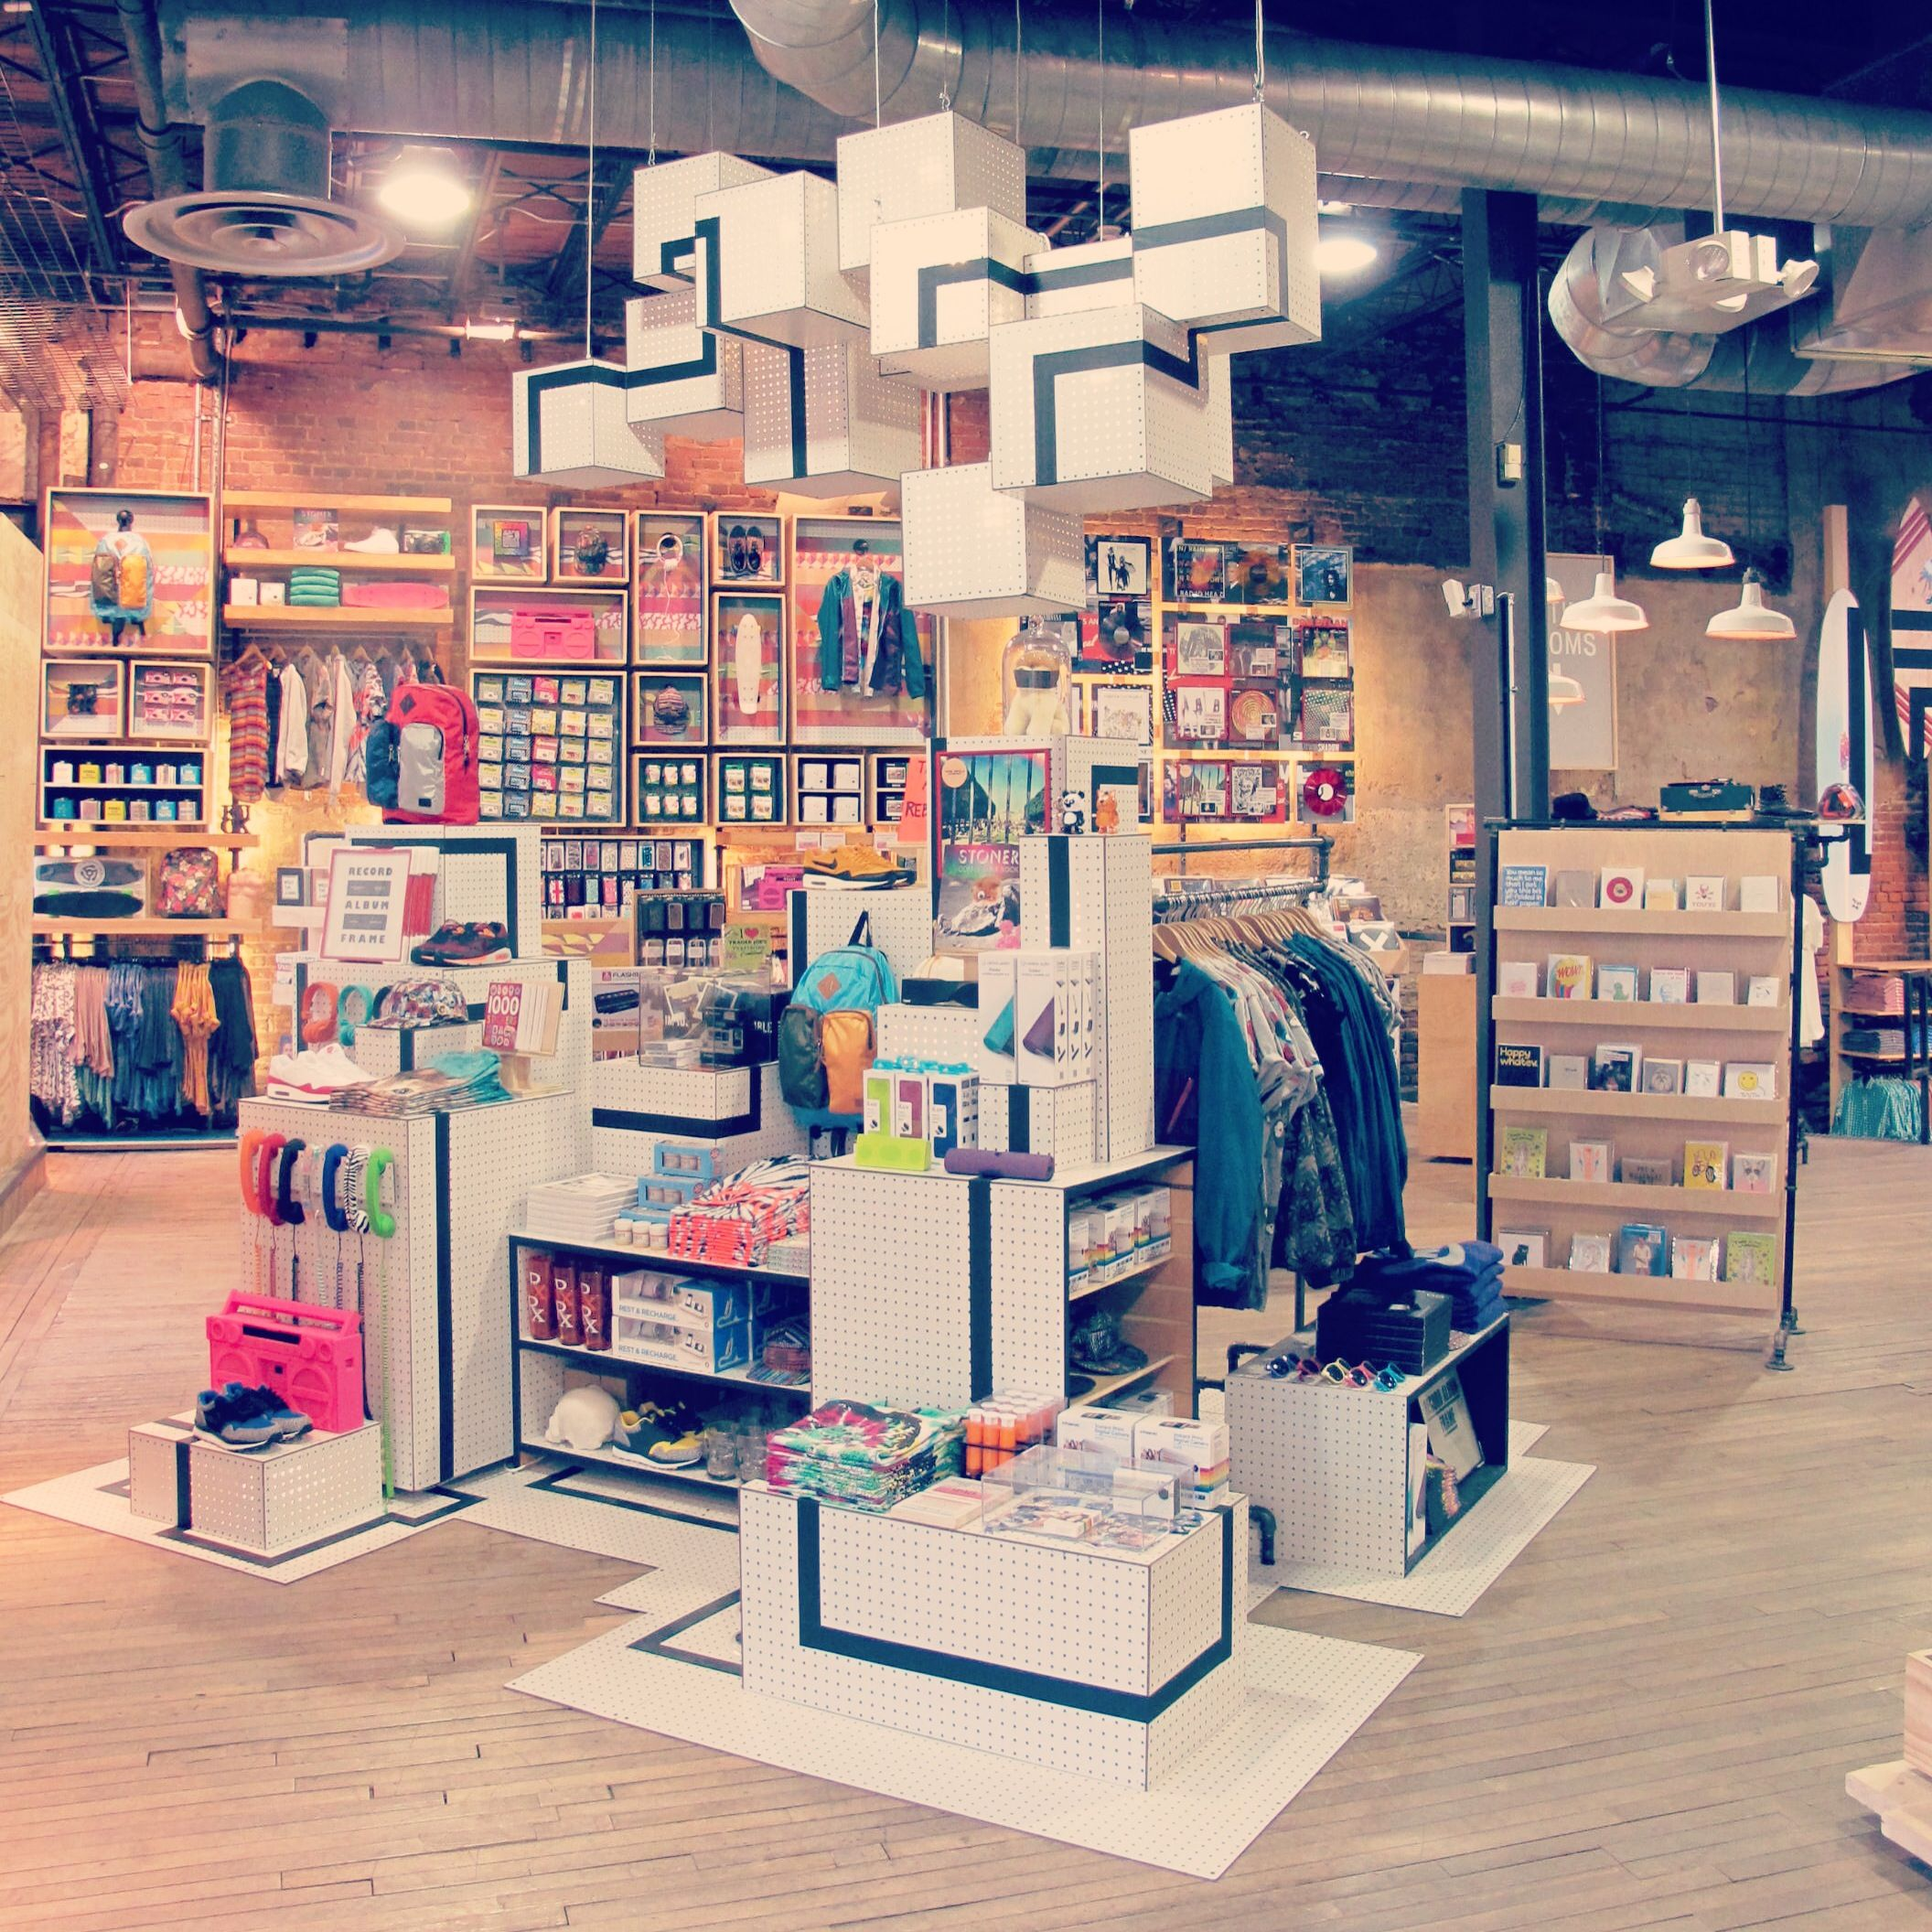 Home Interior Store: Love The Interior Design At Urban Outfitter Stores